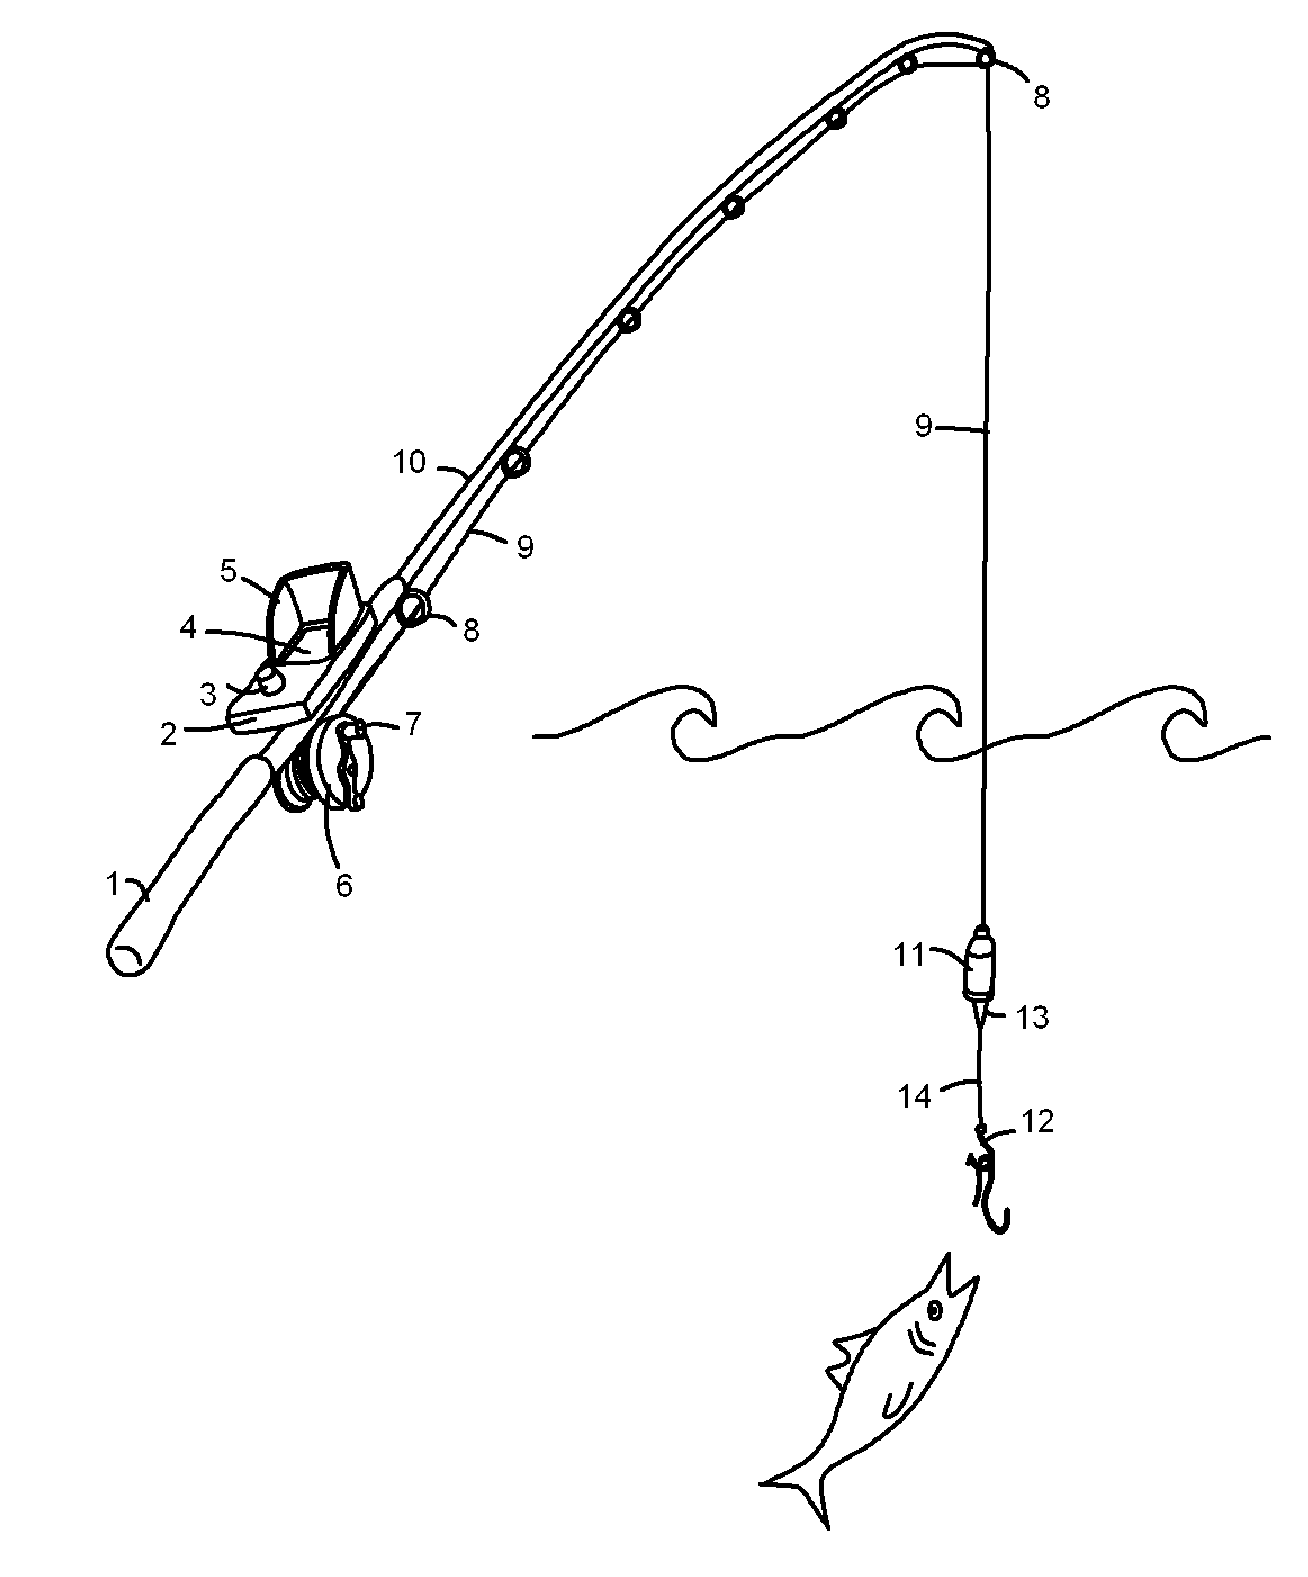 hight resolution of fishing rod and reel diagram photo 5